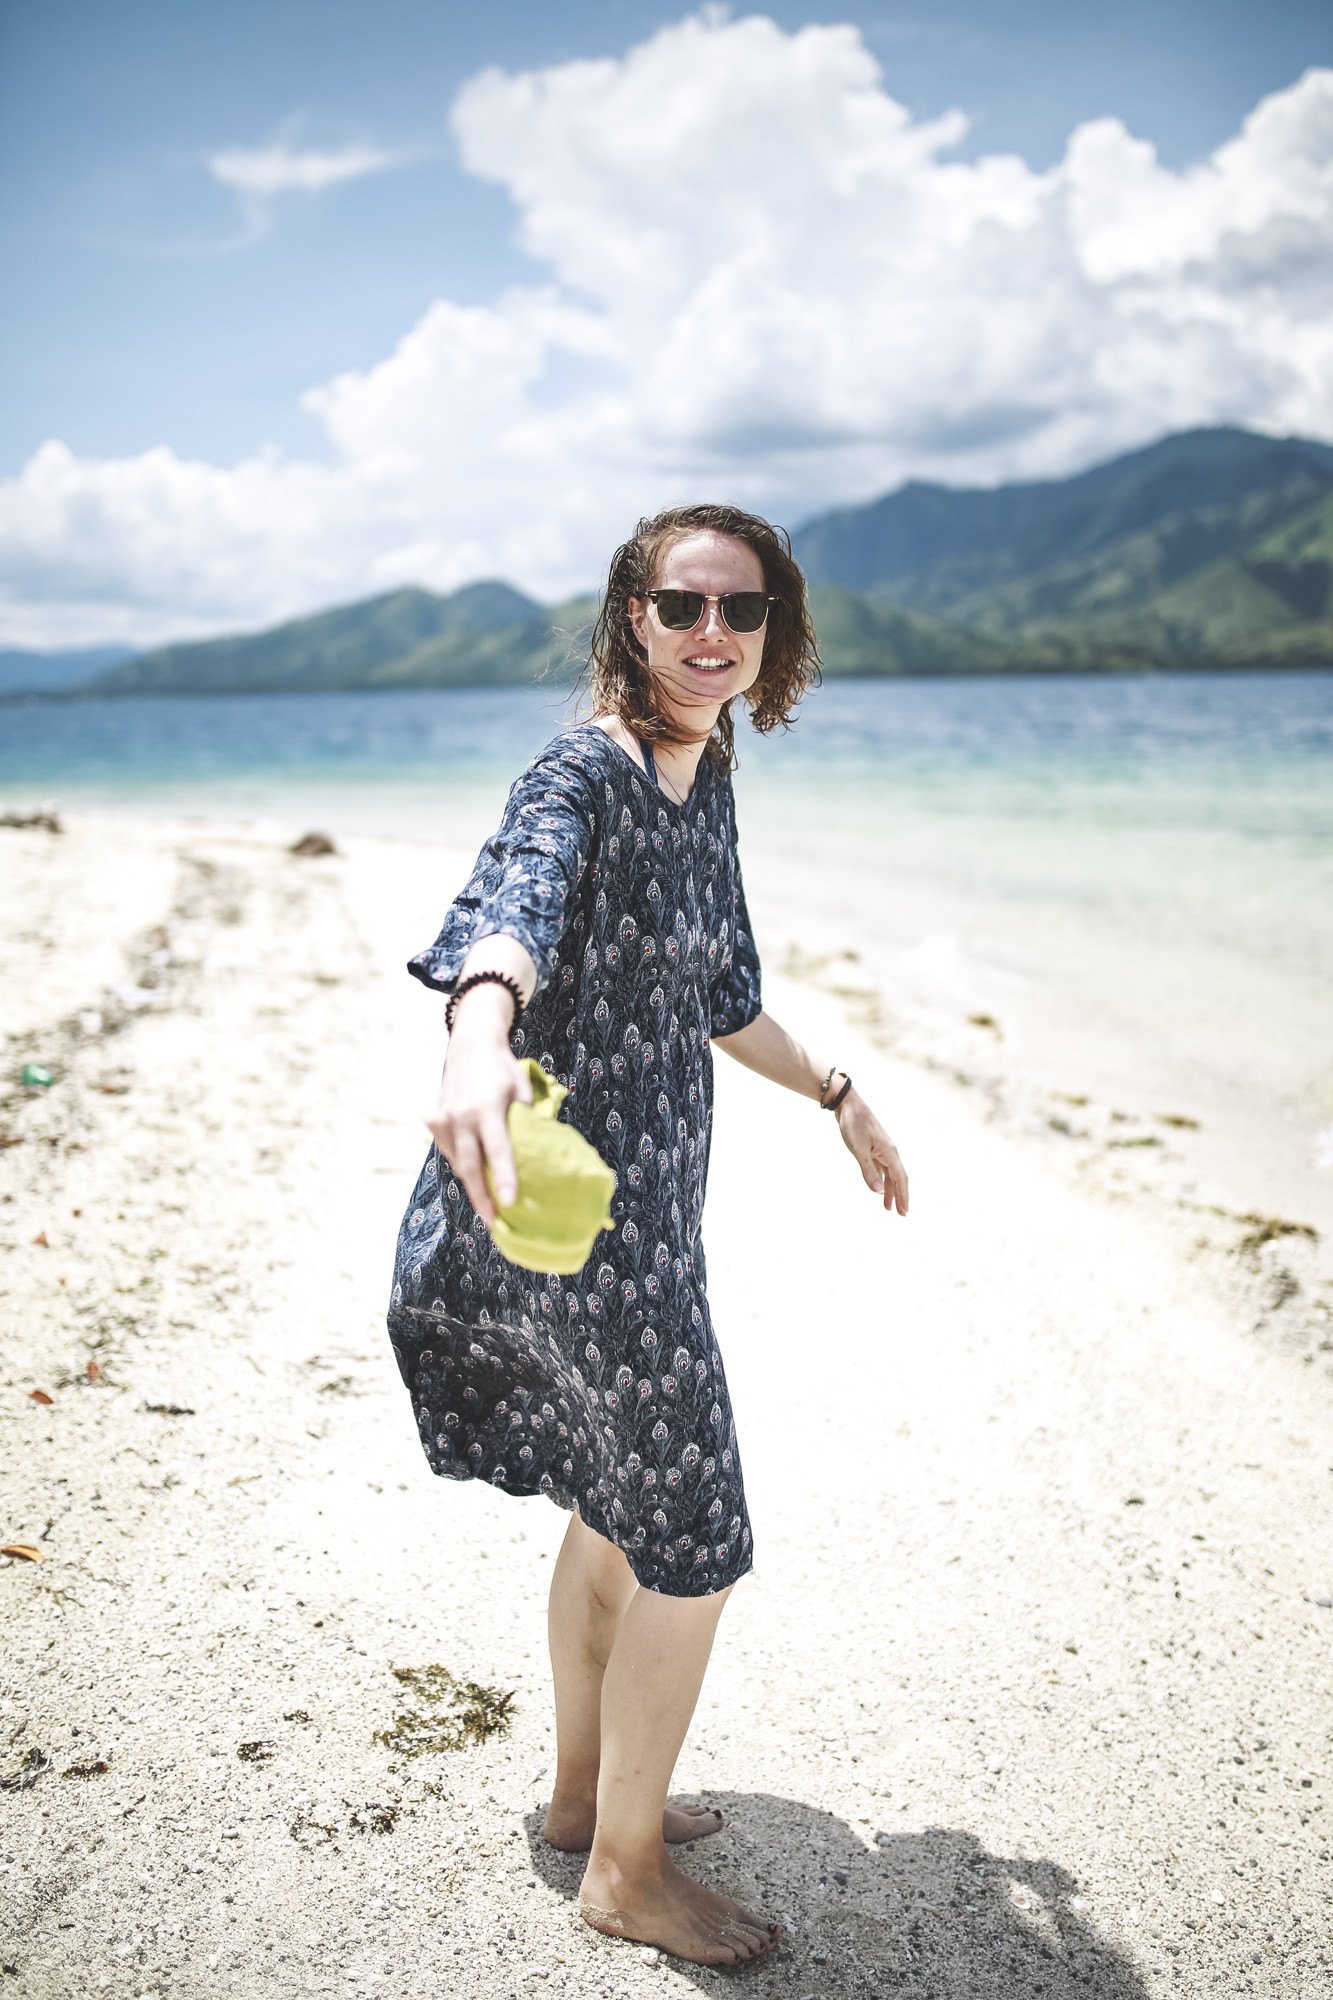 Photos from our journey to Flores / Indonesia in February 2017